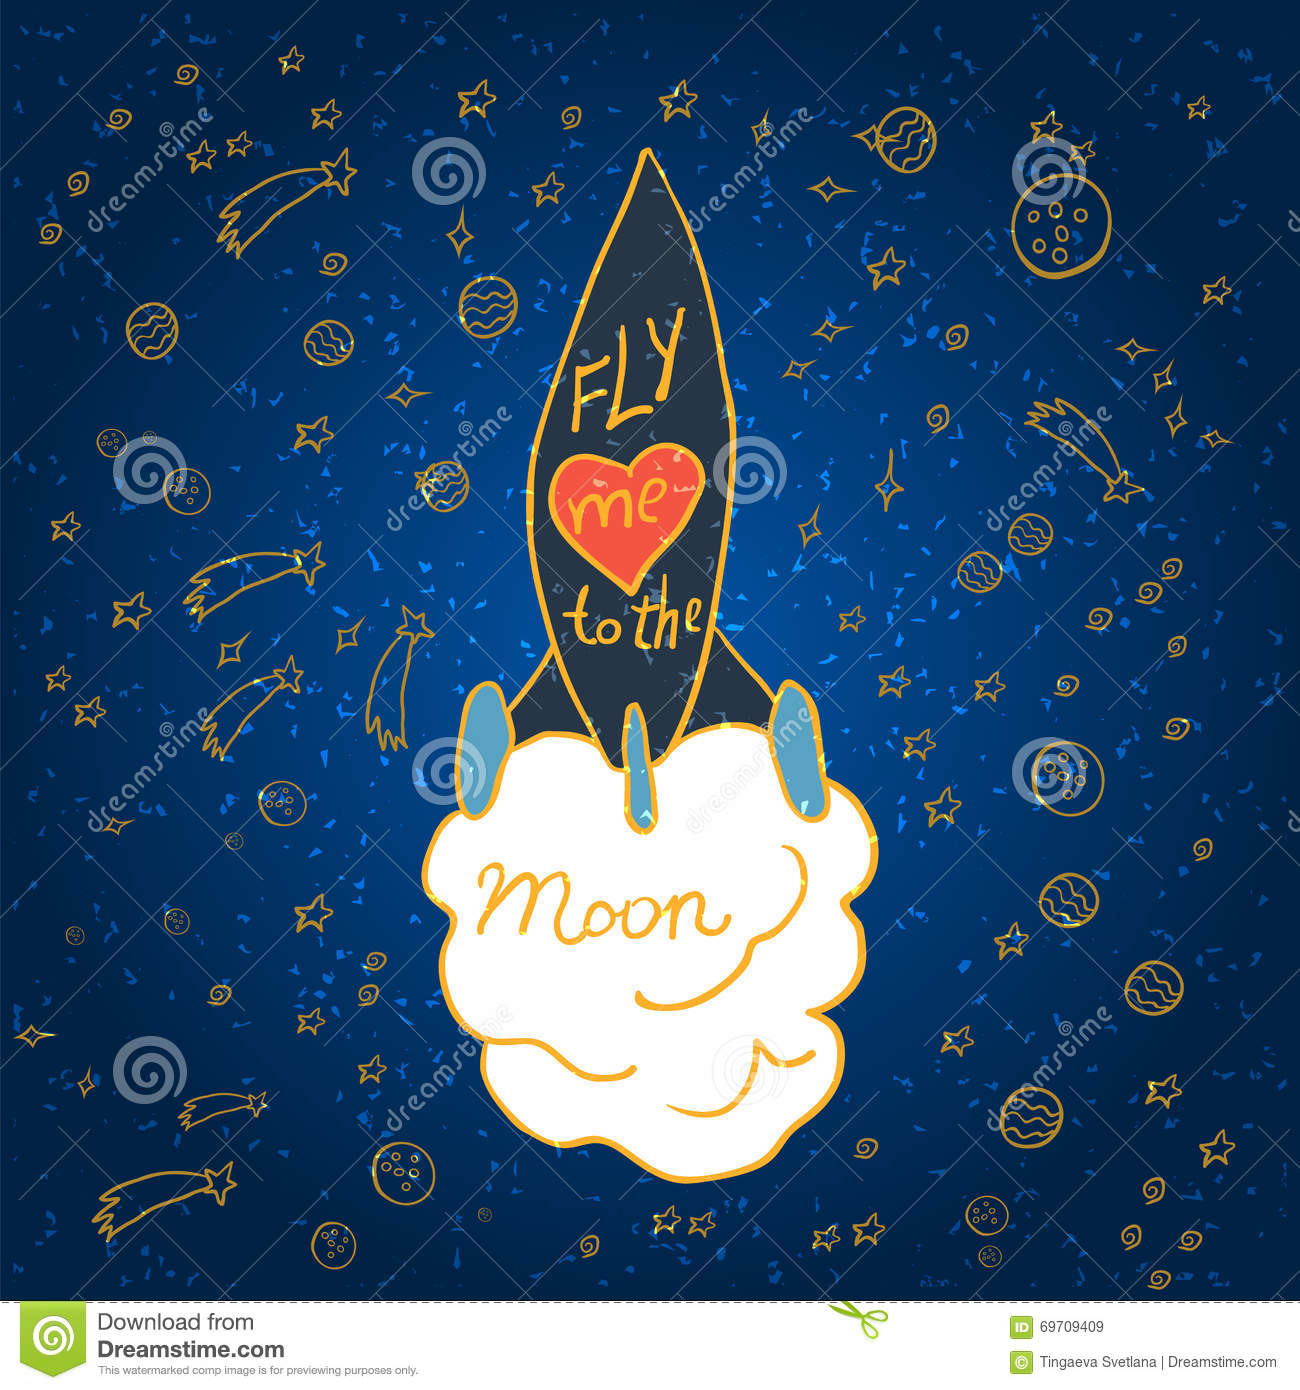 download fly me to the moon free